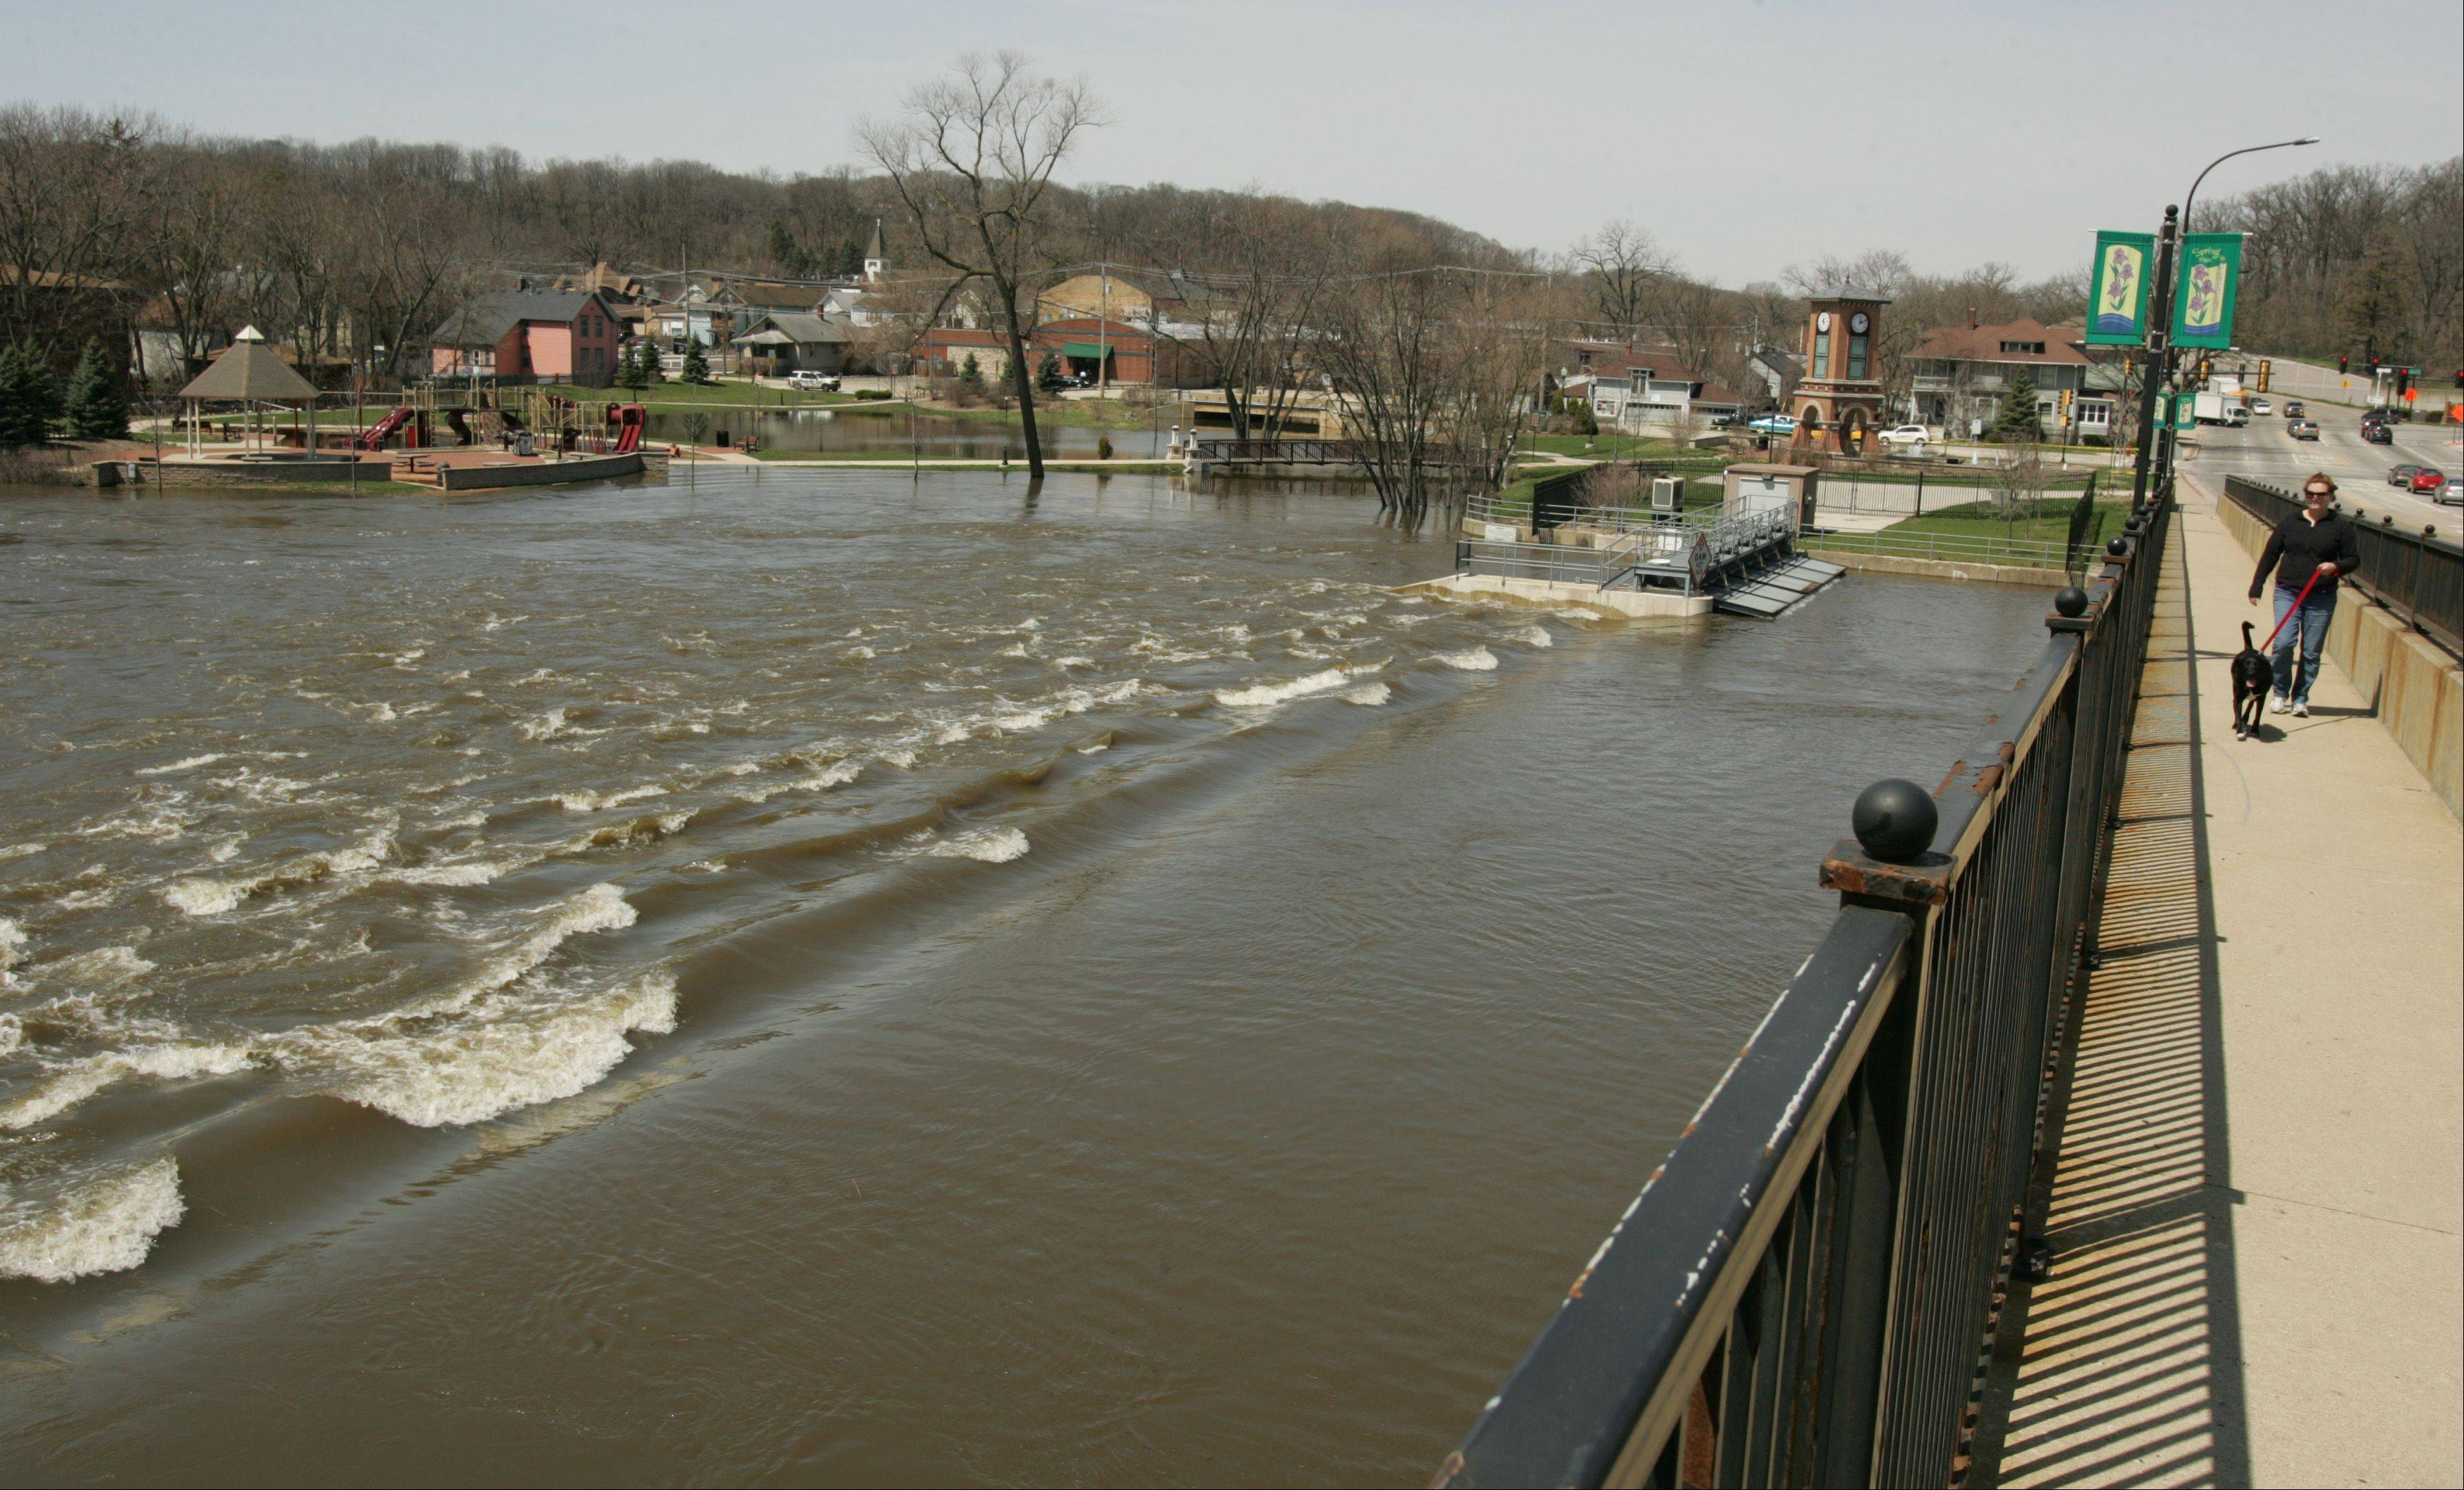 The Algonquin dam is only visible due to the waves created by water as the swollen Fox River rushes beneath Algonquin Road Monday morning.